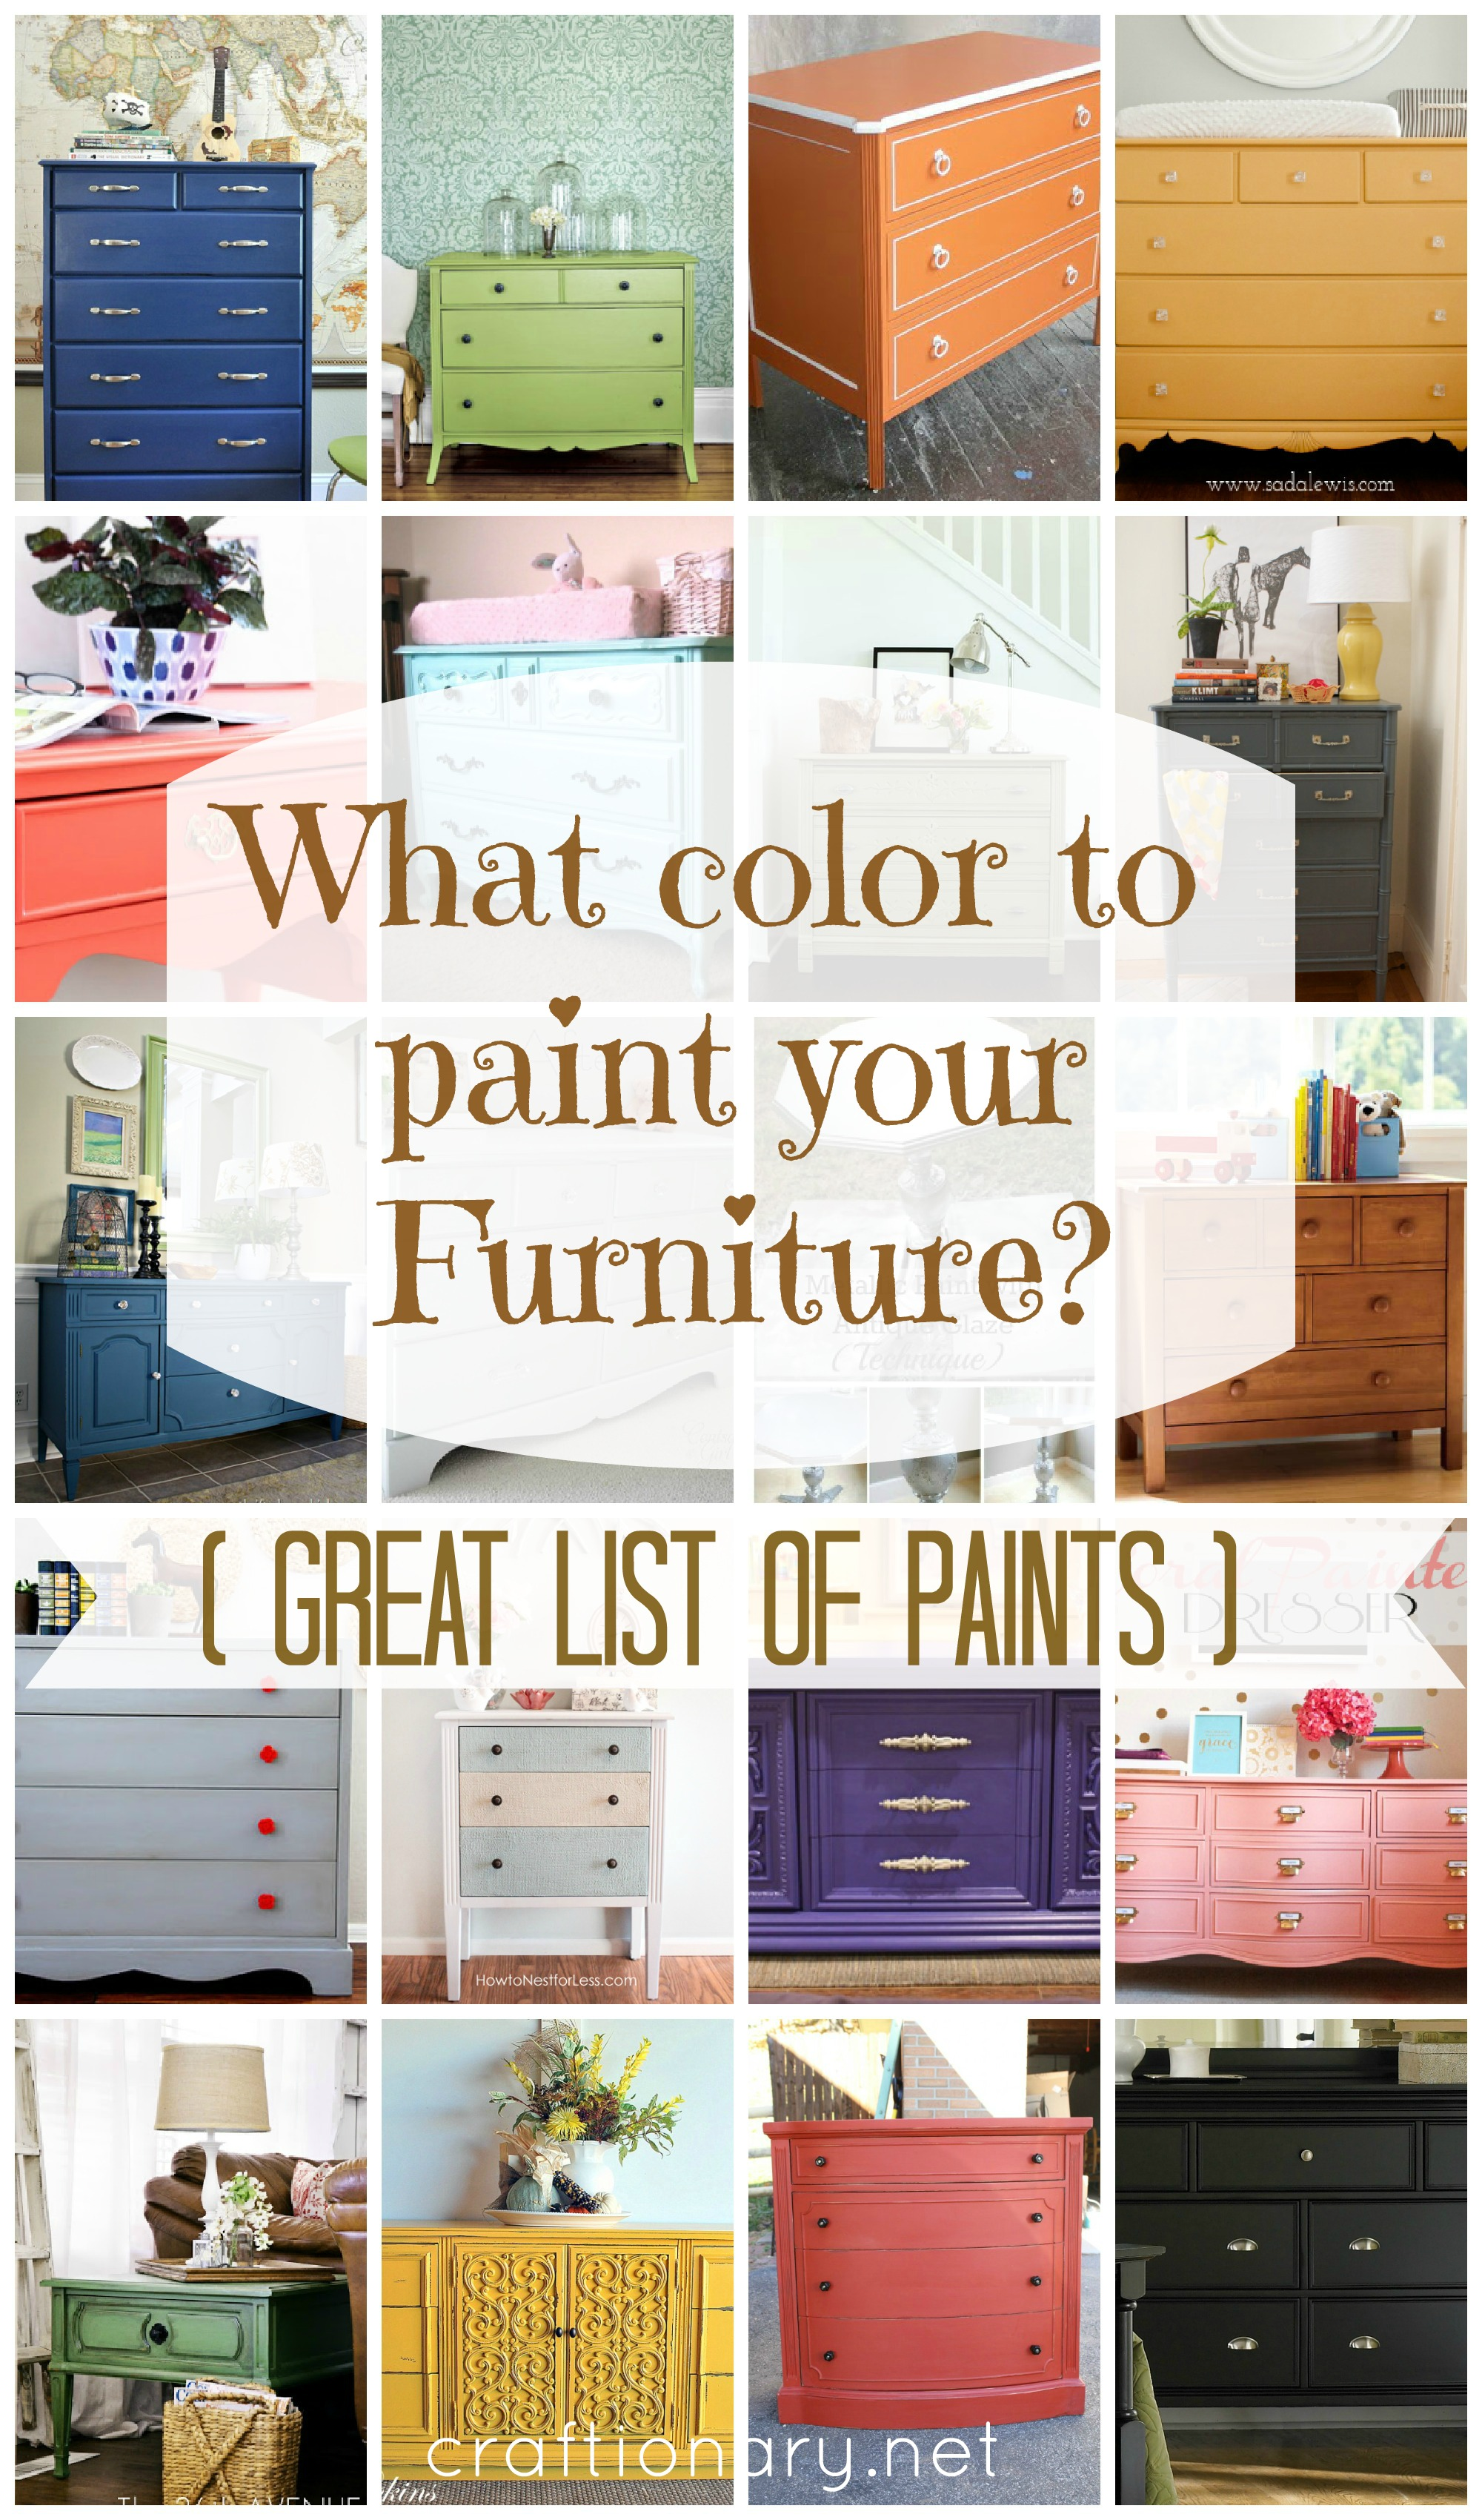 Cool chair paint designs - What Color To Paint Your Furniture 25 Diy Projects